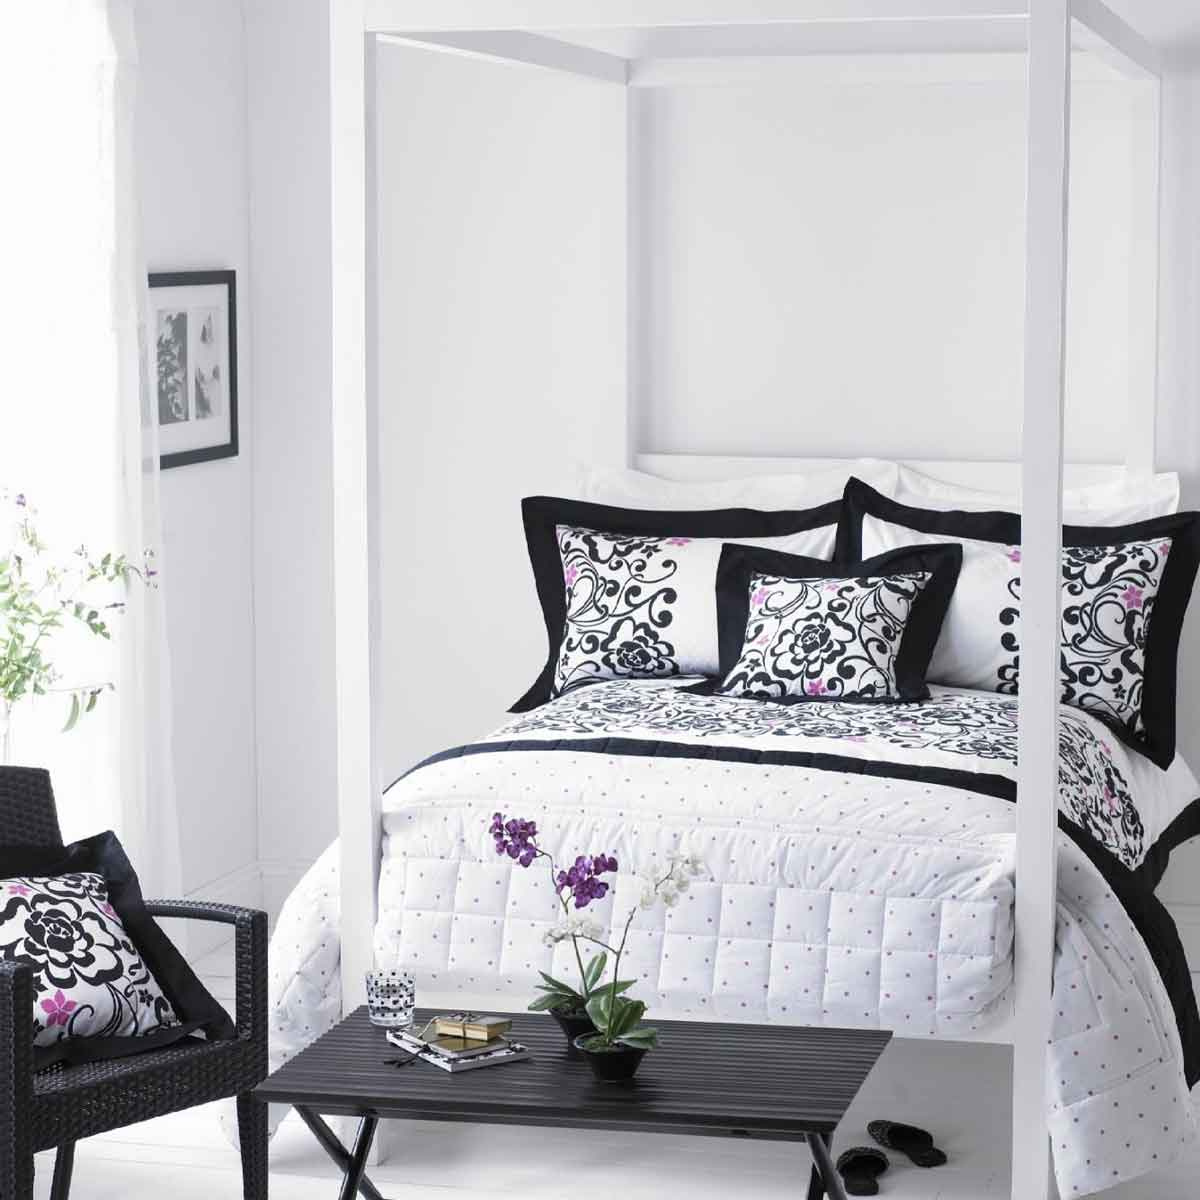 Black And White Bedroom Ideas For Small Rooms Modern Black And White Bedroom Ideas